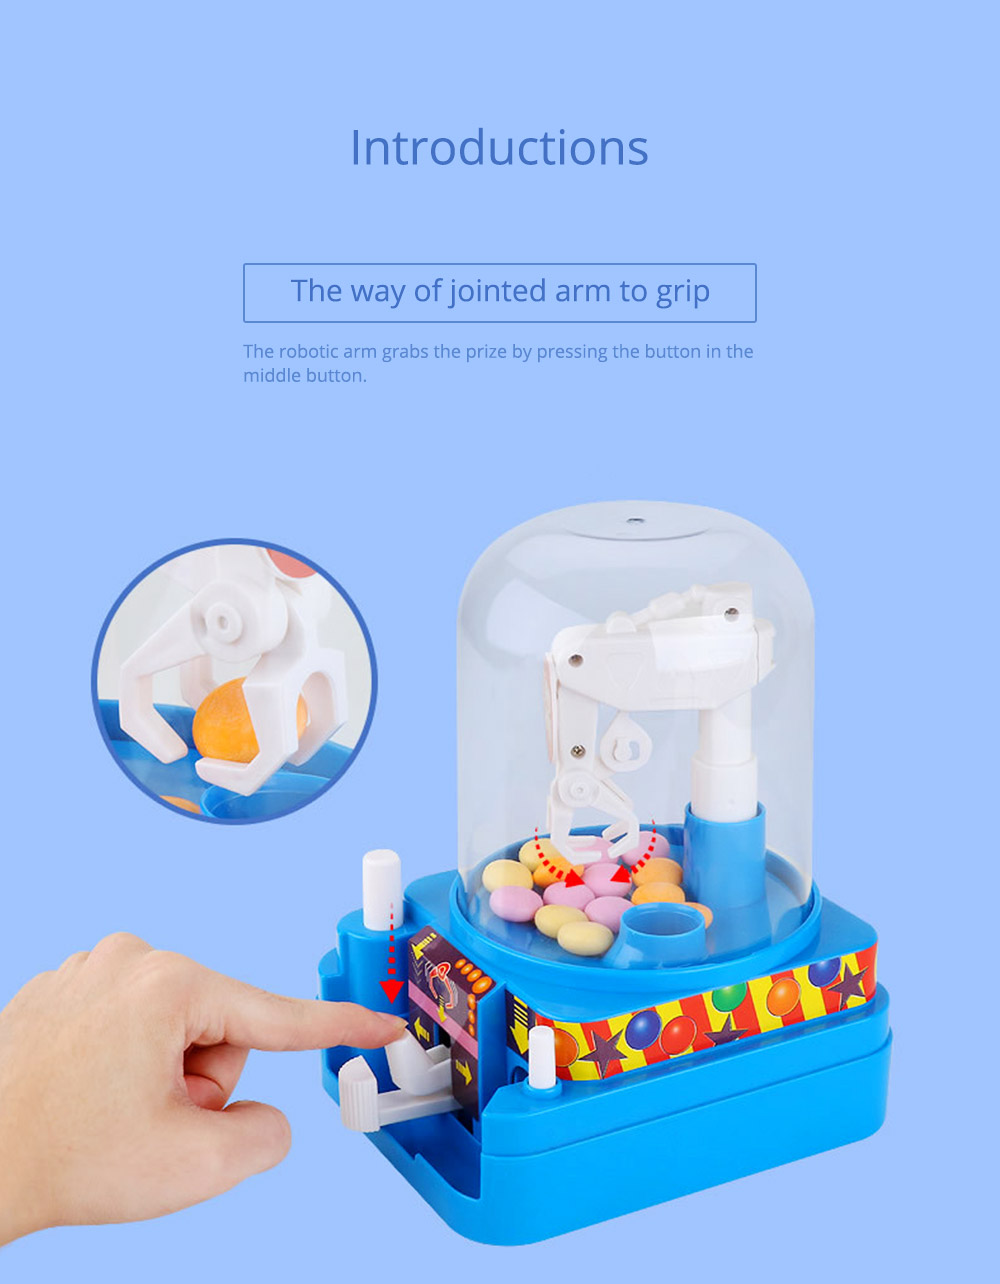 Creative Candy Clamping Machine Toy with Flexible Articulated Arm, Funny Carton Candy Sugar Crane Manual Machine for Children 9